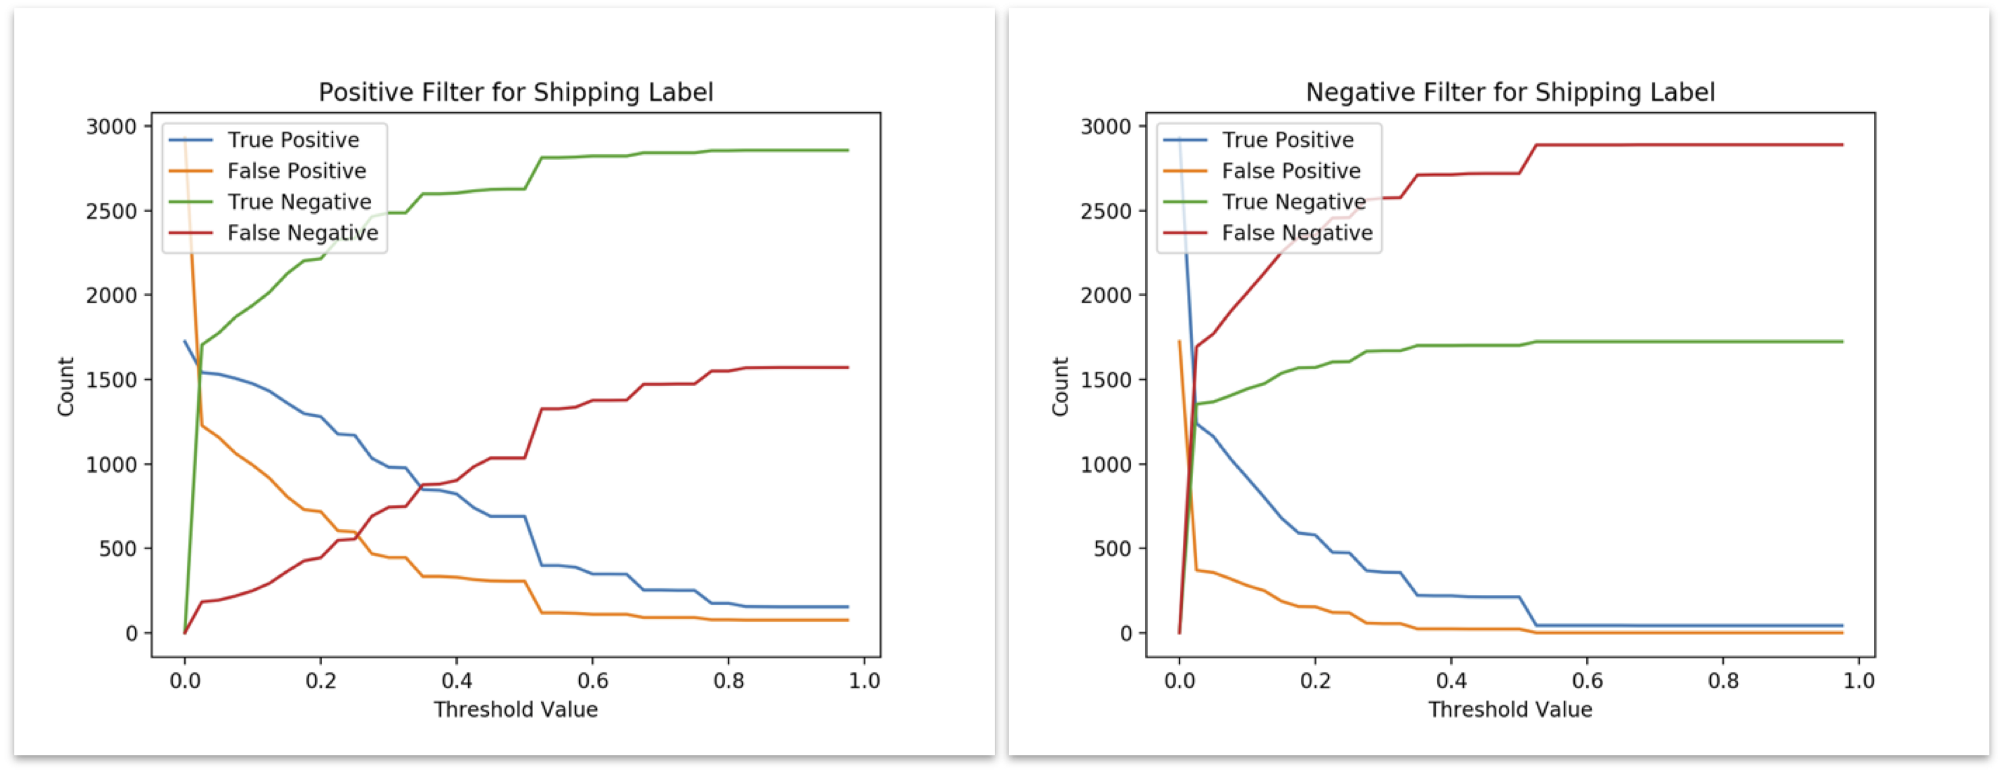 Using Natural Language Processing to Classify and Analyze User Feedback